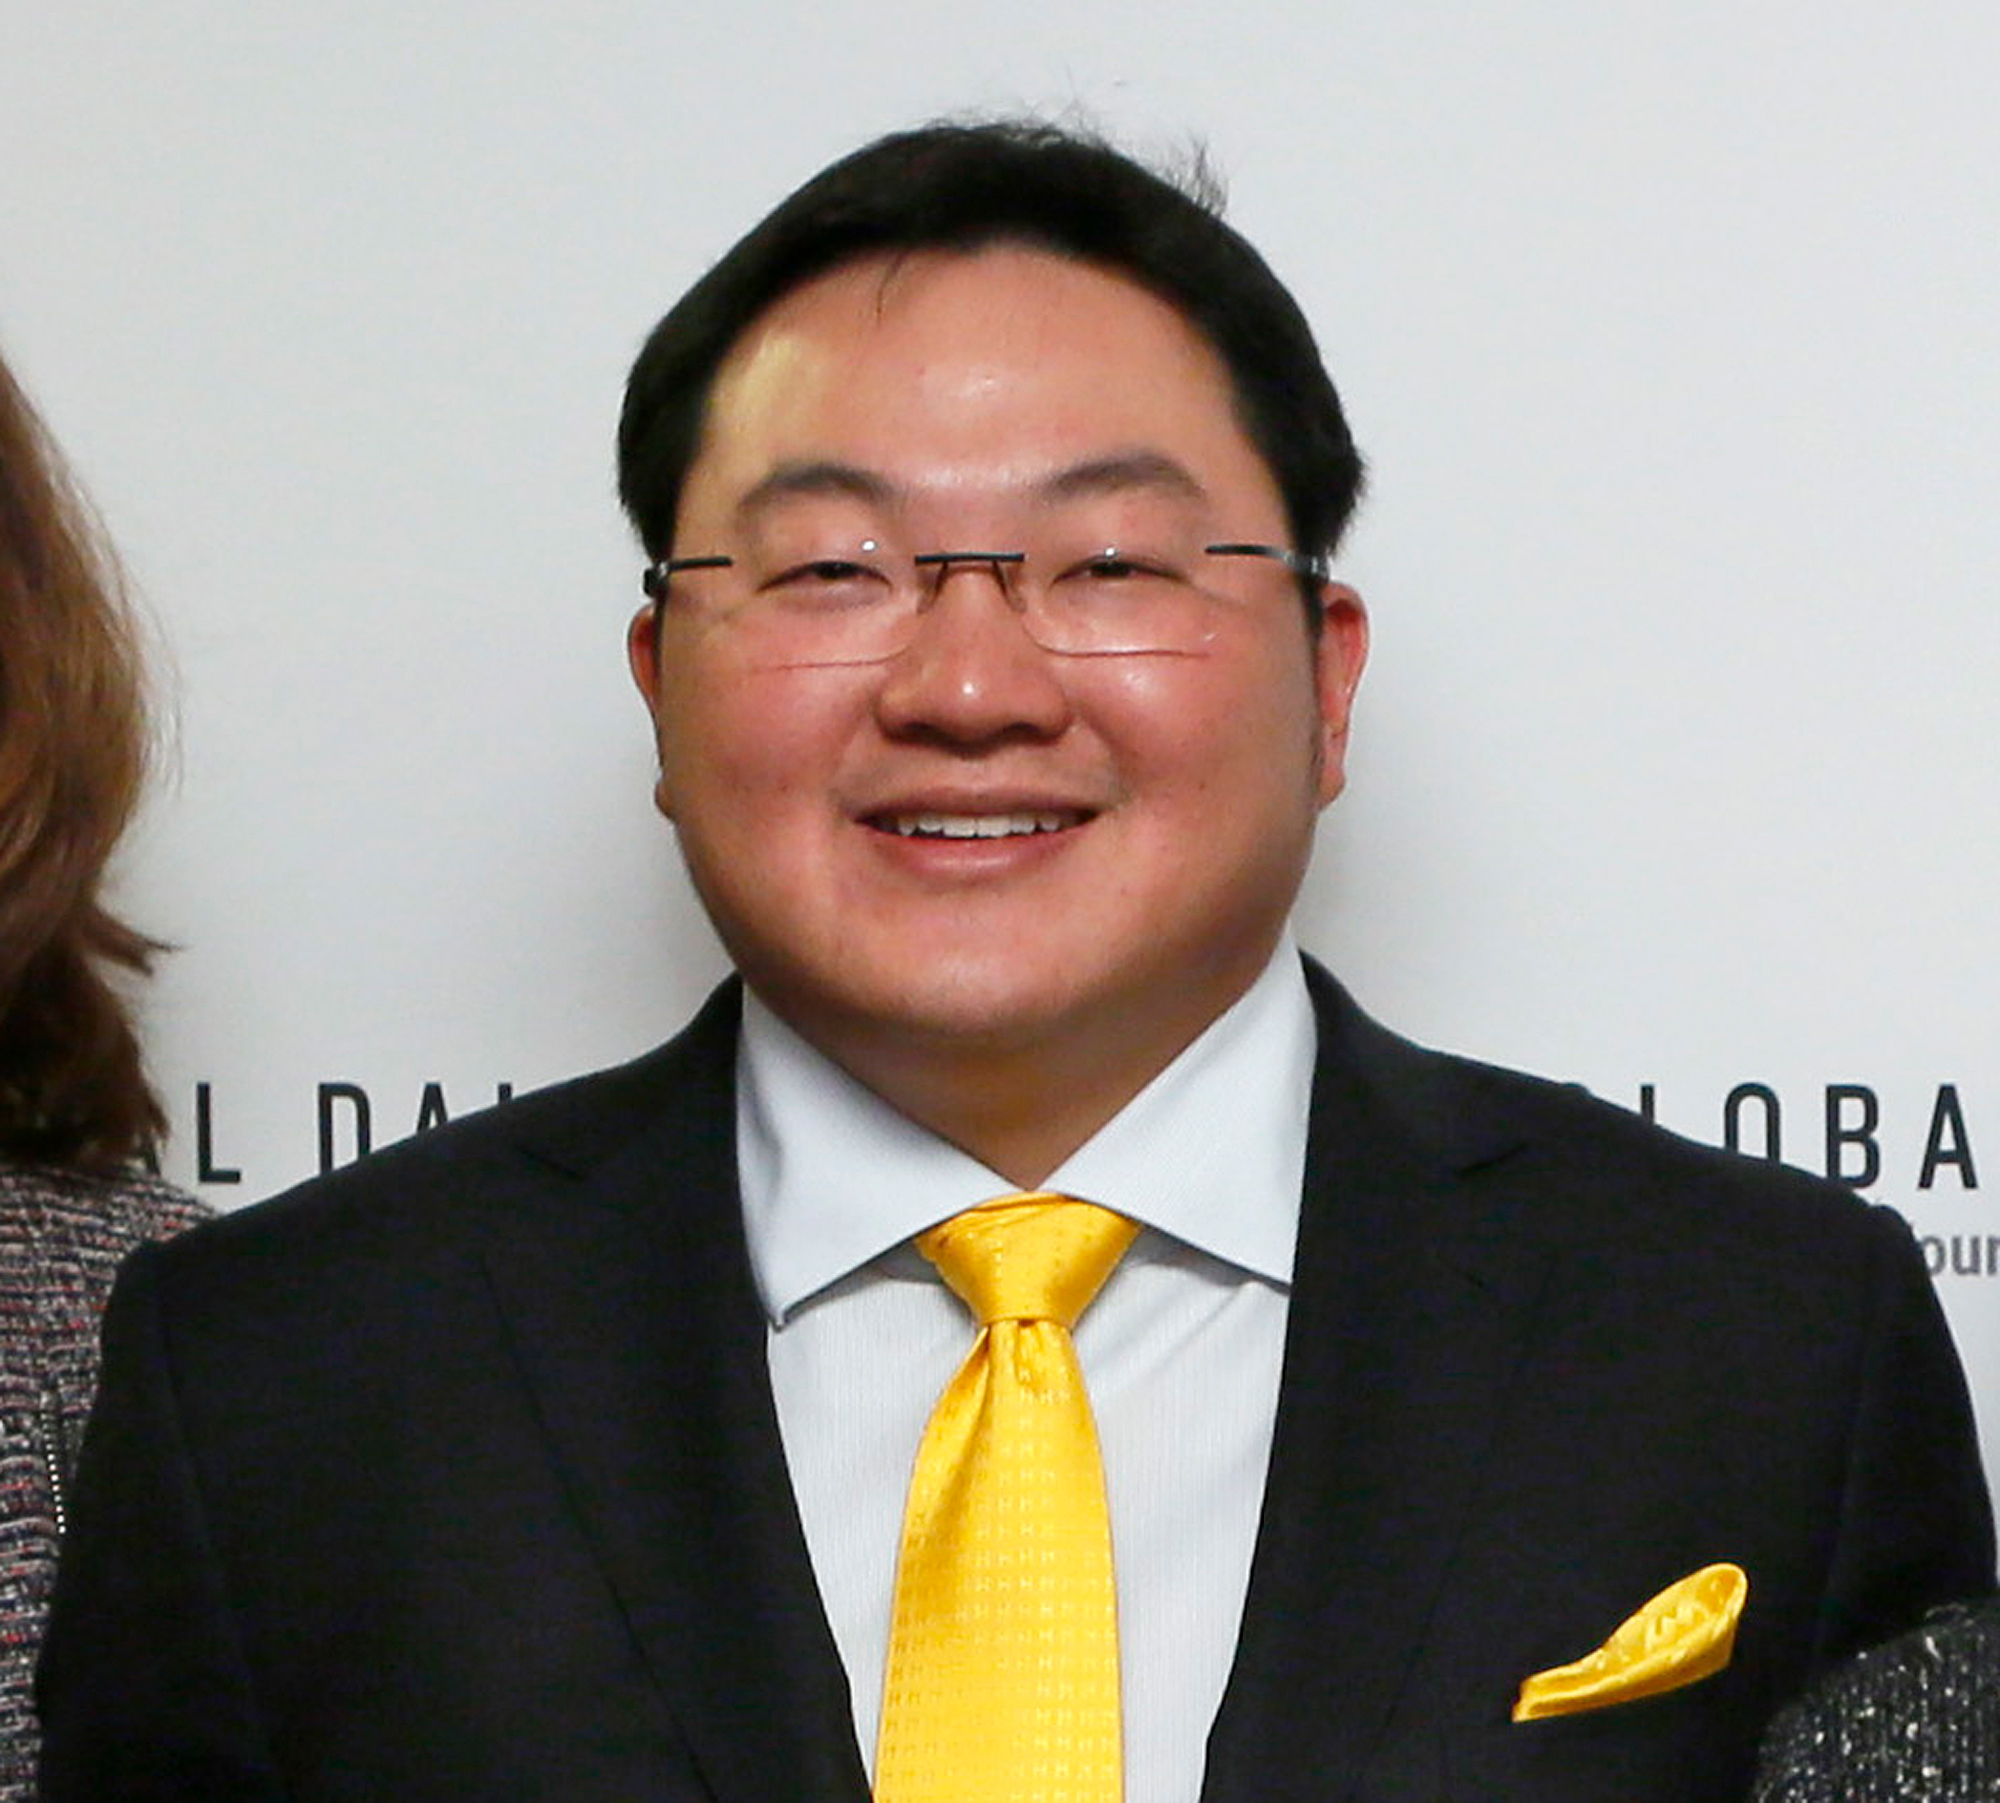 Fugitive Jho Low, seen here in a 2015 file photograph, may be hiding in Wuhan, according to Malaysian authorities.